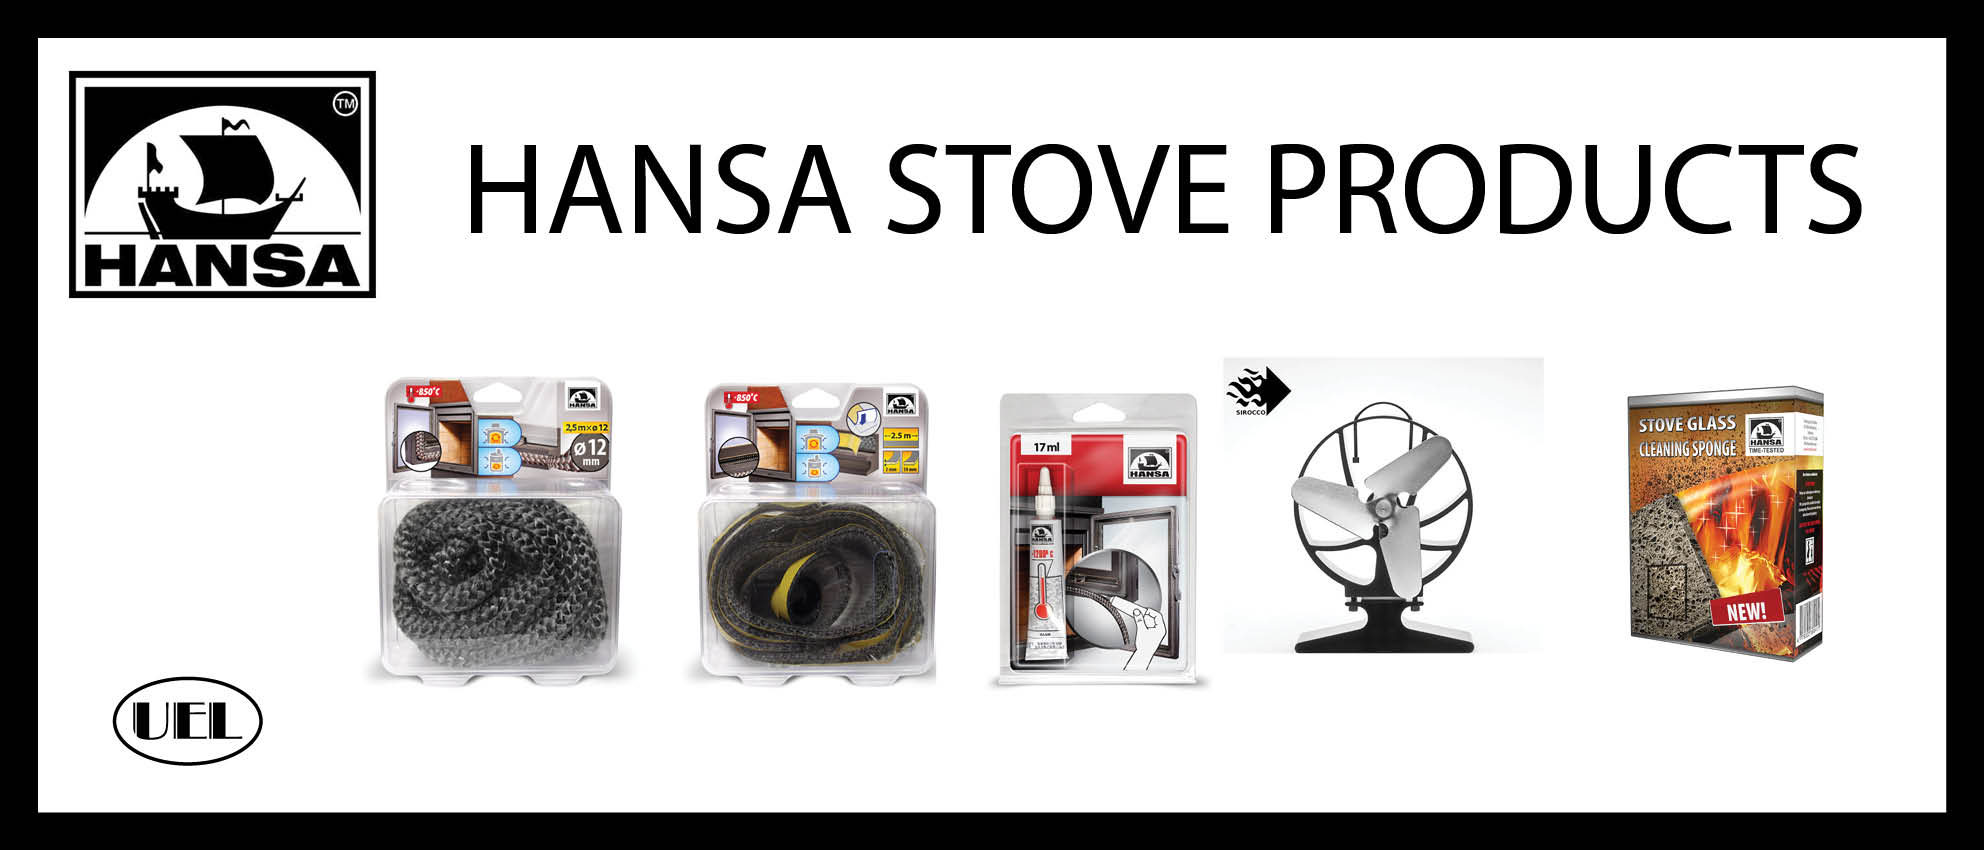 Hansa Stove Products